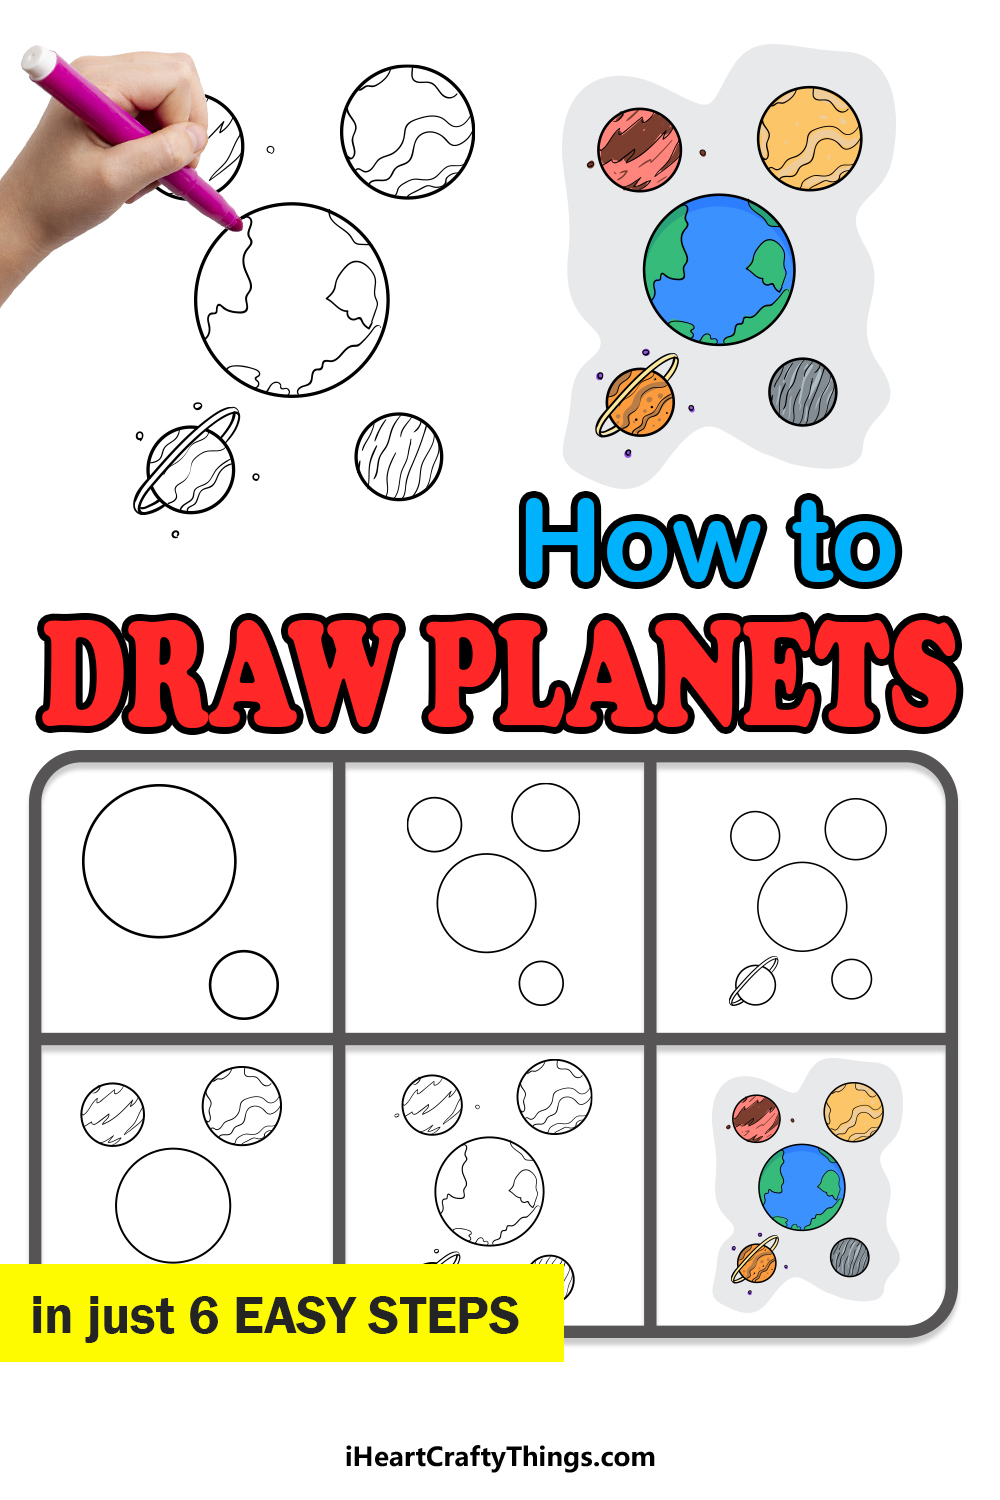 how to draw planets in 6 easy steps